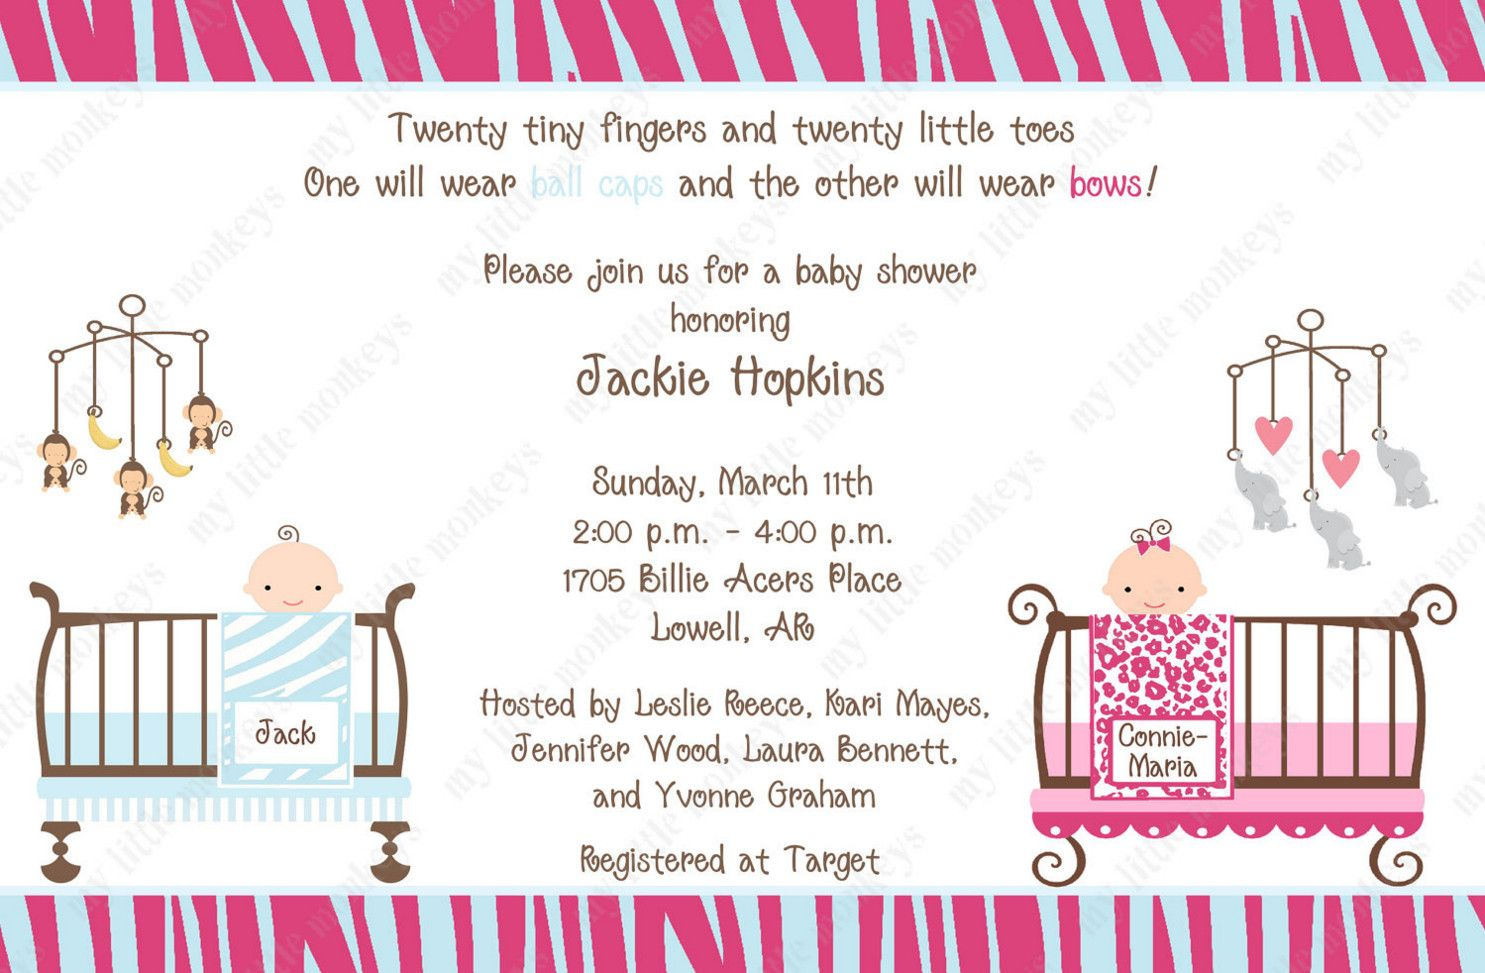 twin baby shower invitations boy and girl | DIY and crafts ...